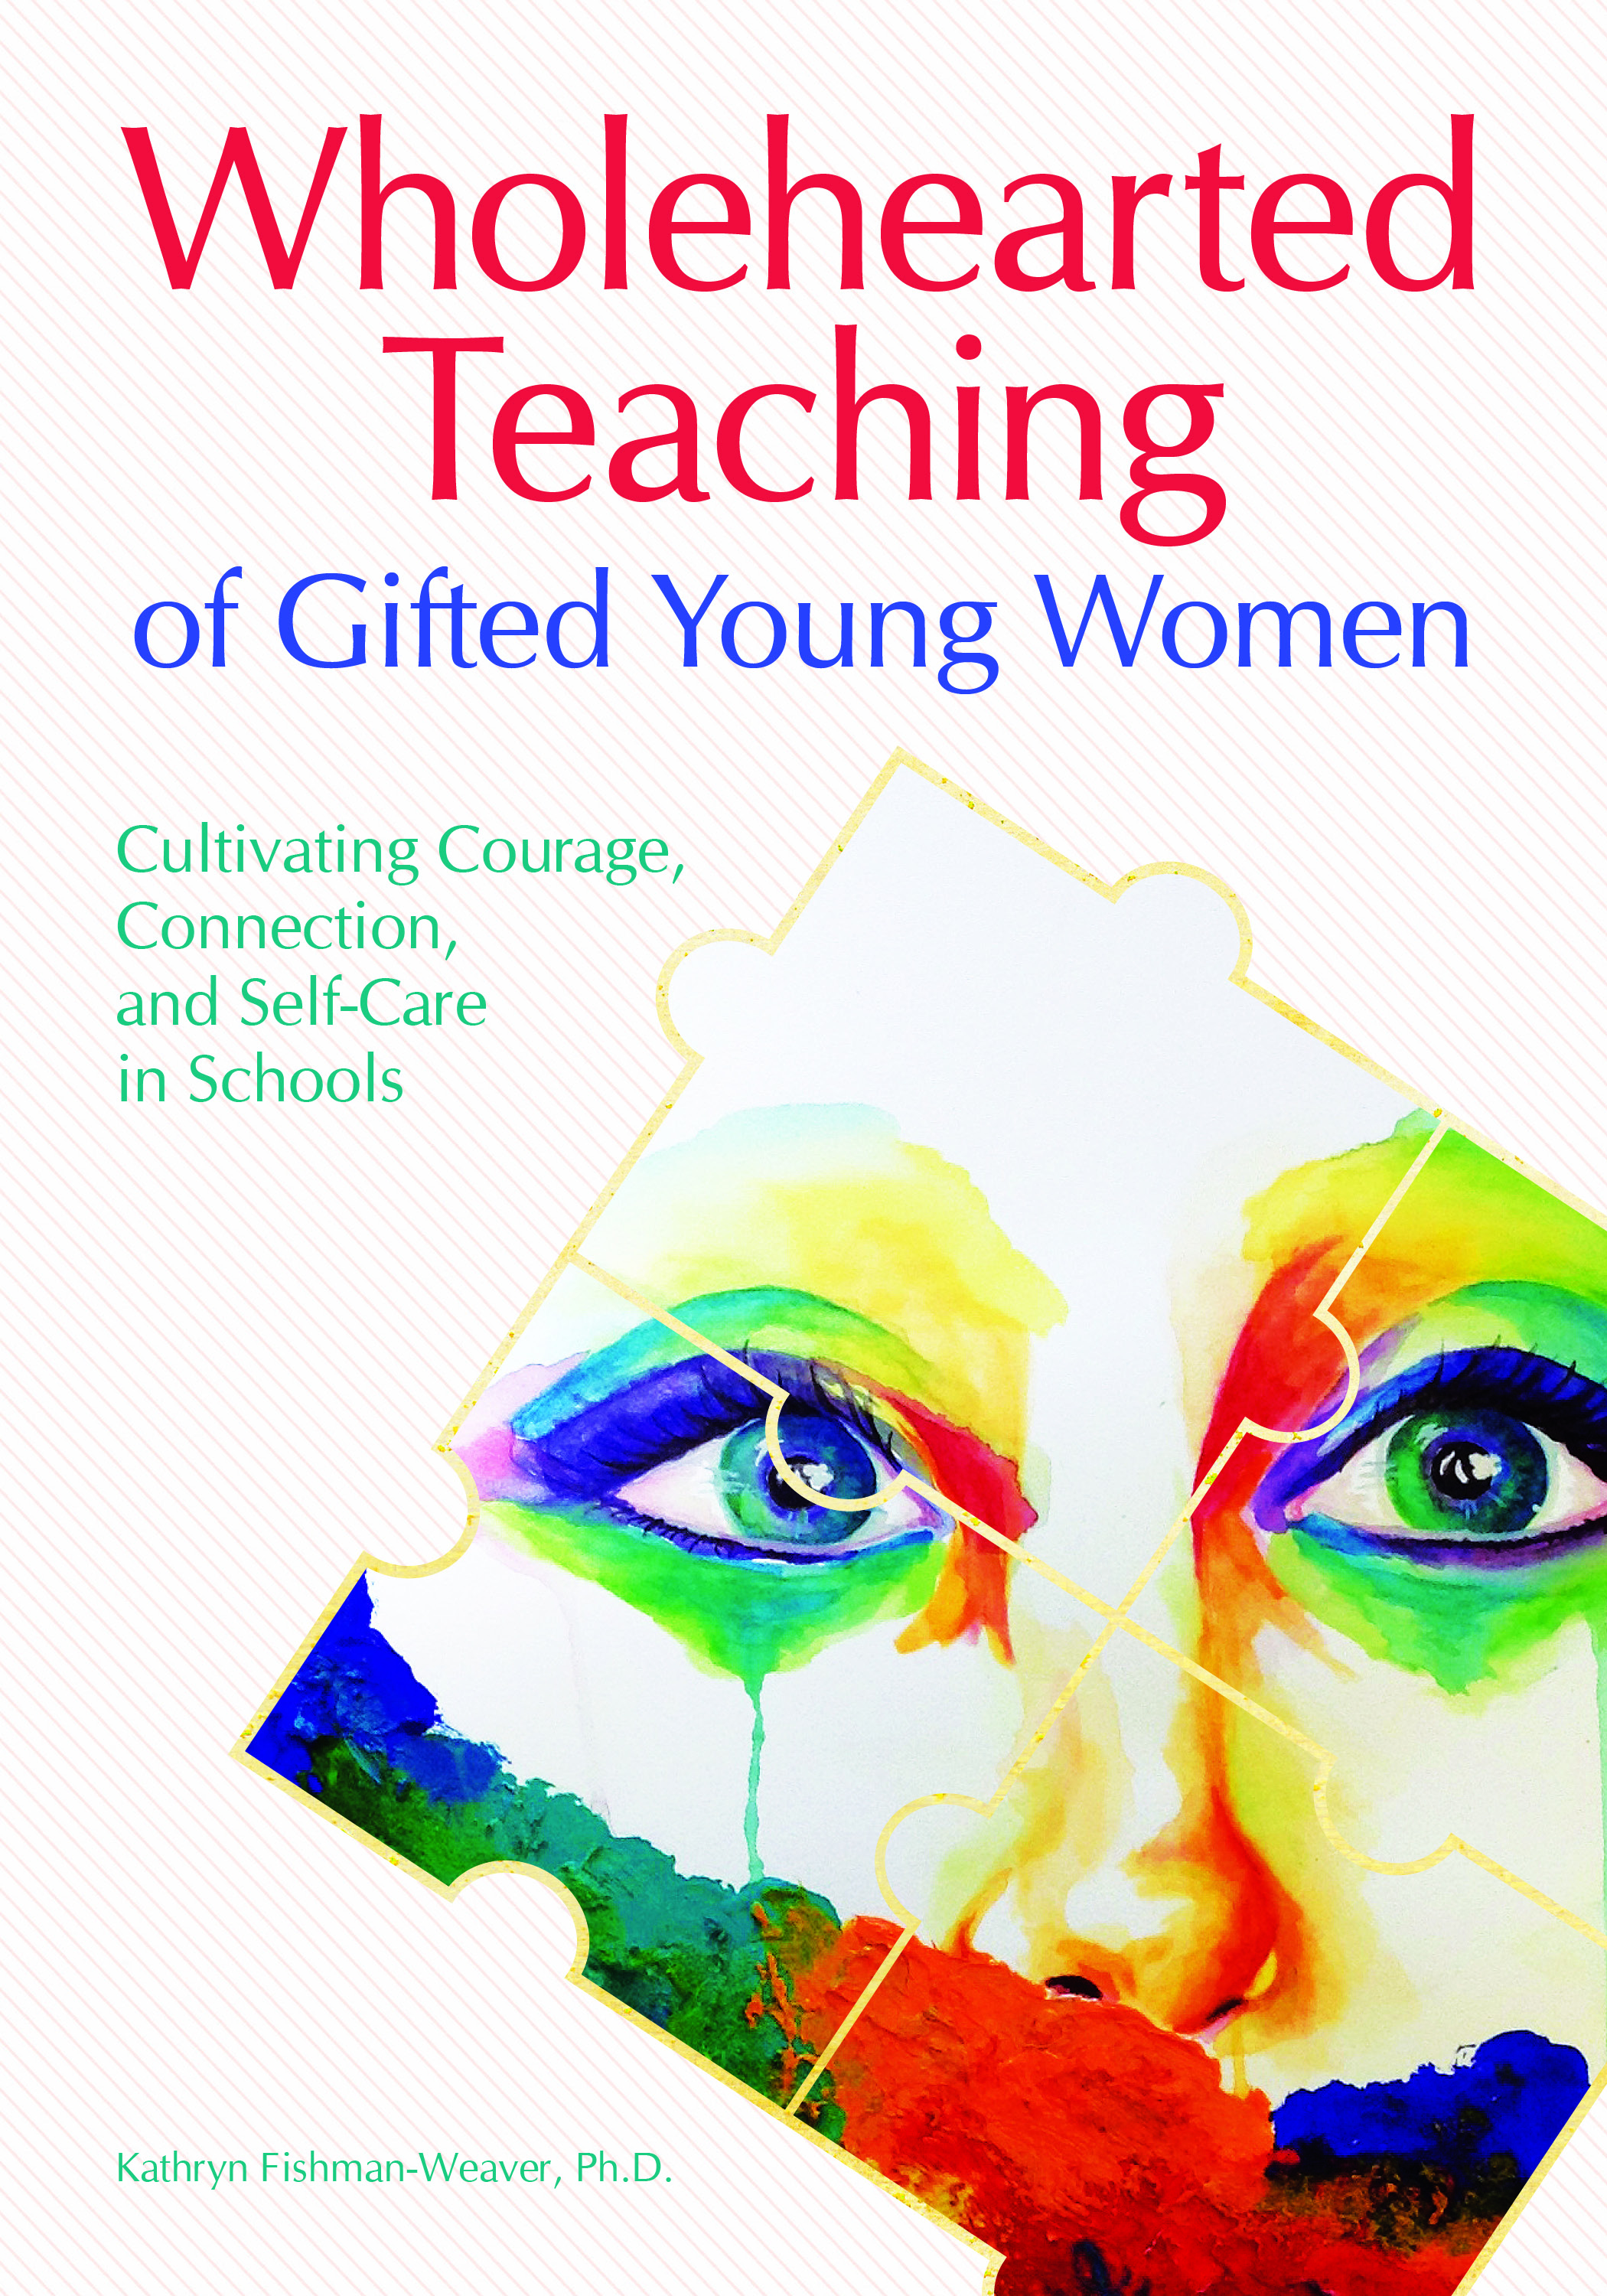 Wholehearted Teaching of Gifted Young Women Cover (1).jpg